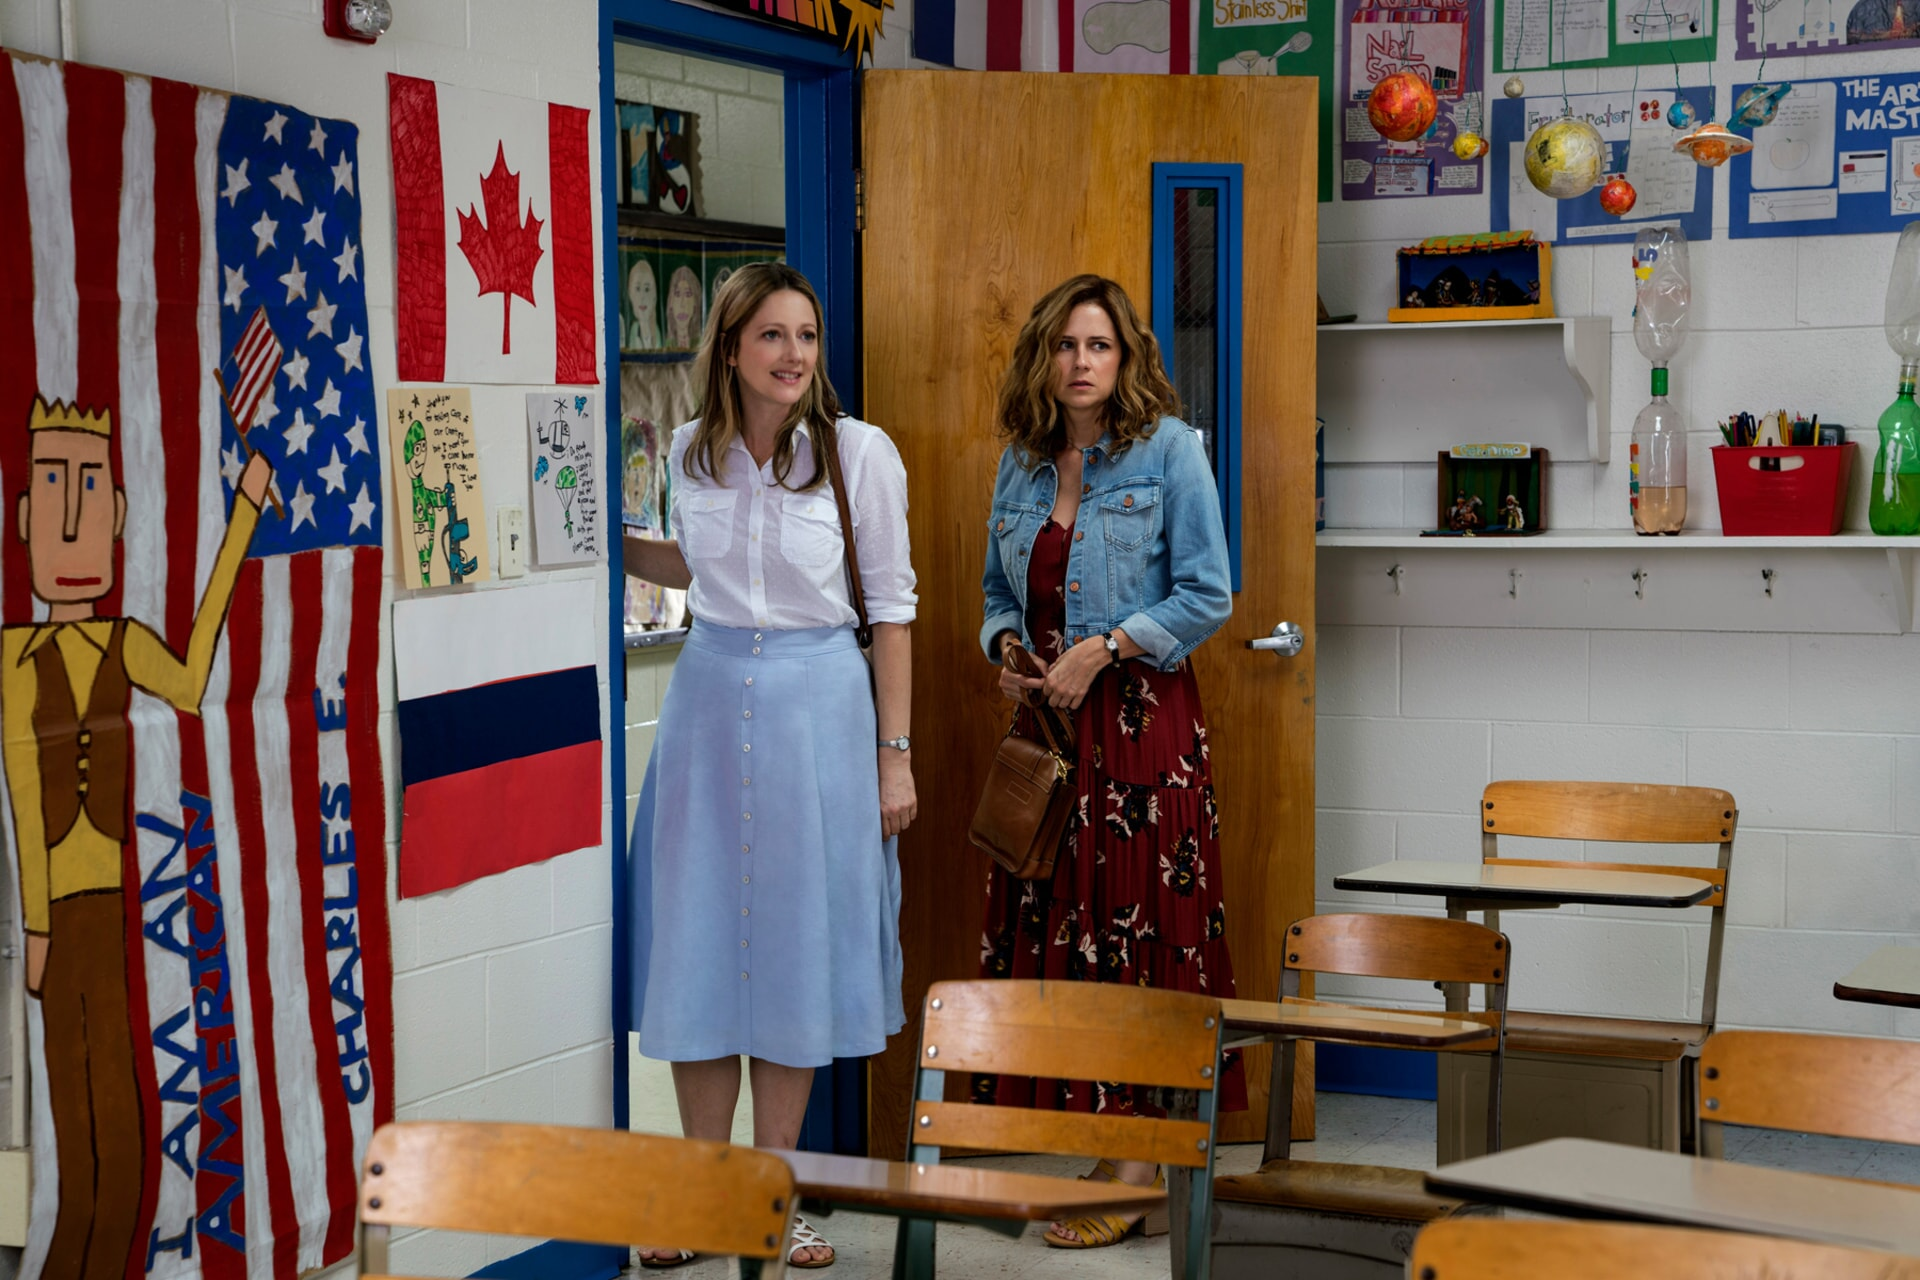 """JUDY GREER as Joyce and JENNA FISCHER as Heidi in Warner Bros. Pictures' and Village Roadshow Pictures' """"THE 15:17 TO PARIS,"""" a Warner Bros. Pictures release."""